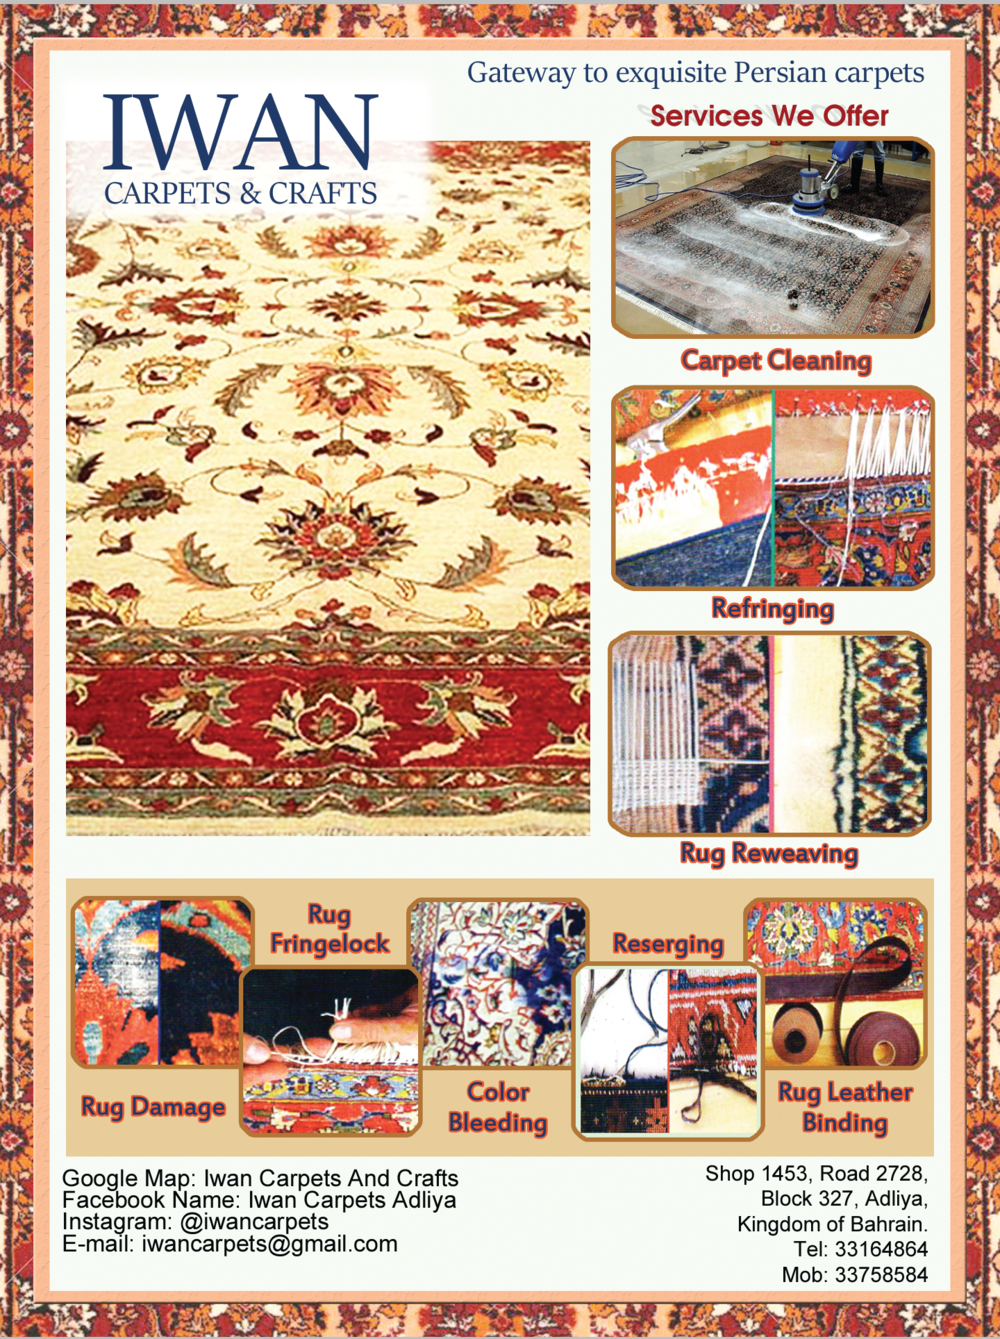 Services Offered - In-addition to cleaning carpet we also offer services to proper maintain your value-able carpets for many more years.